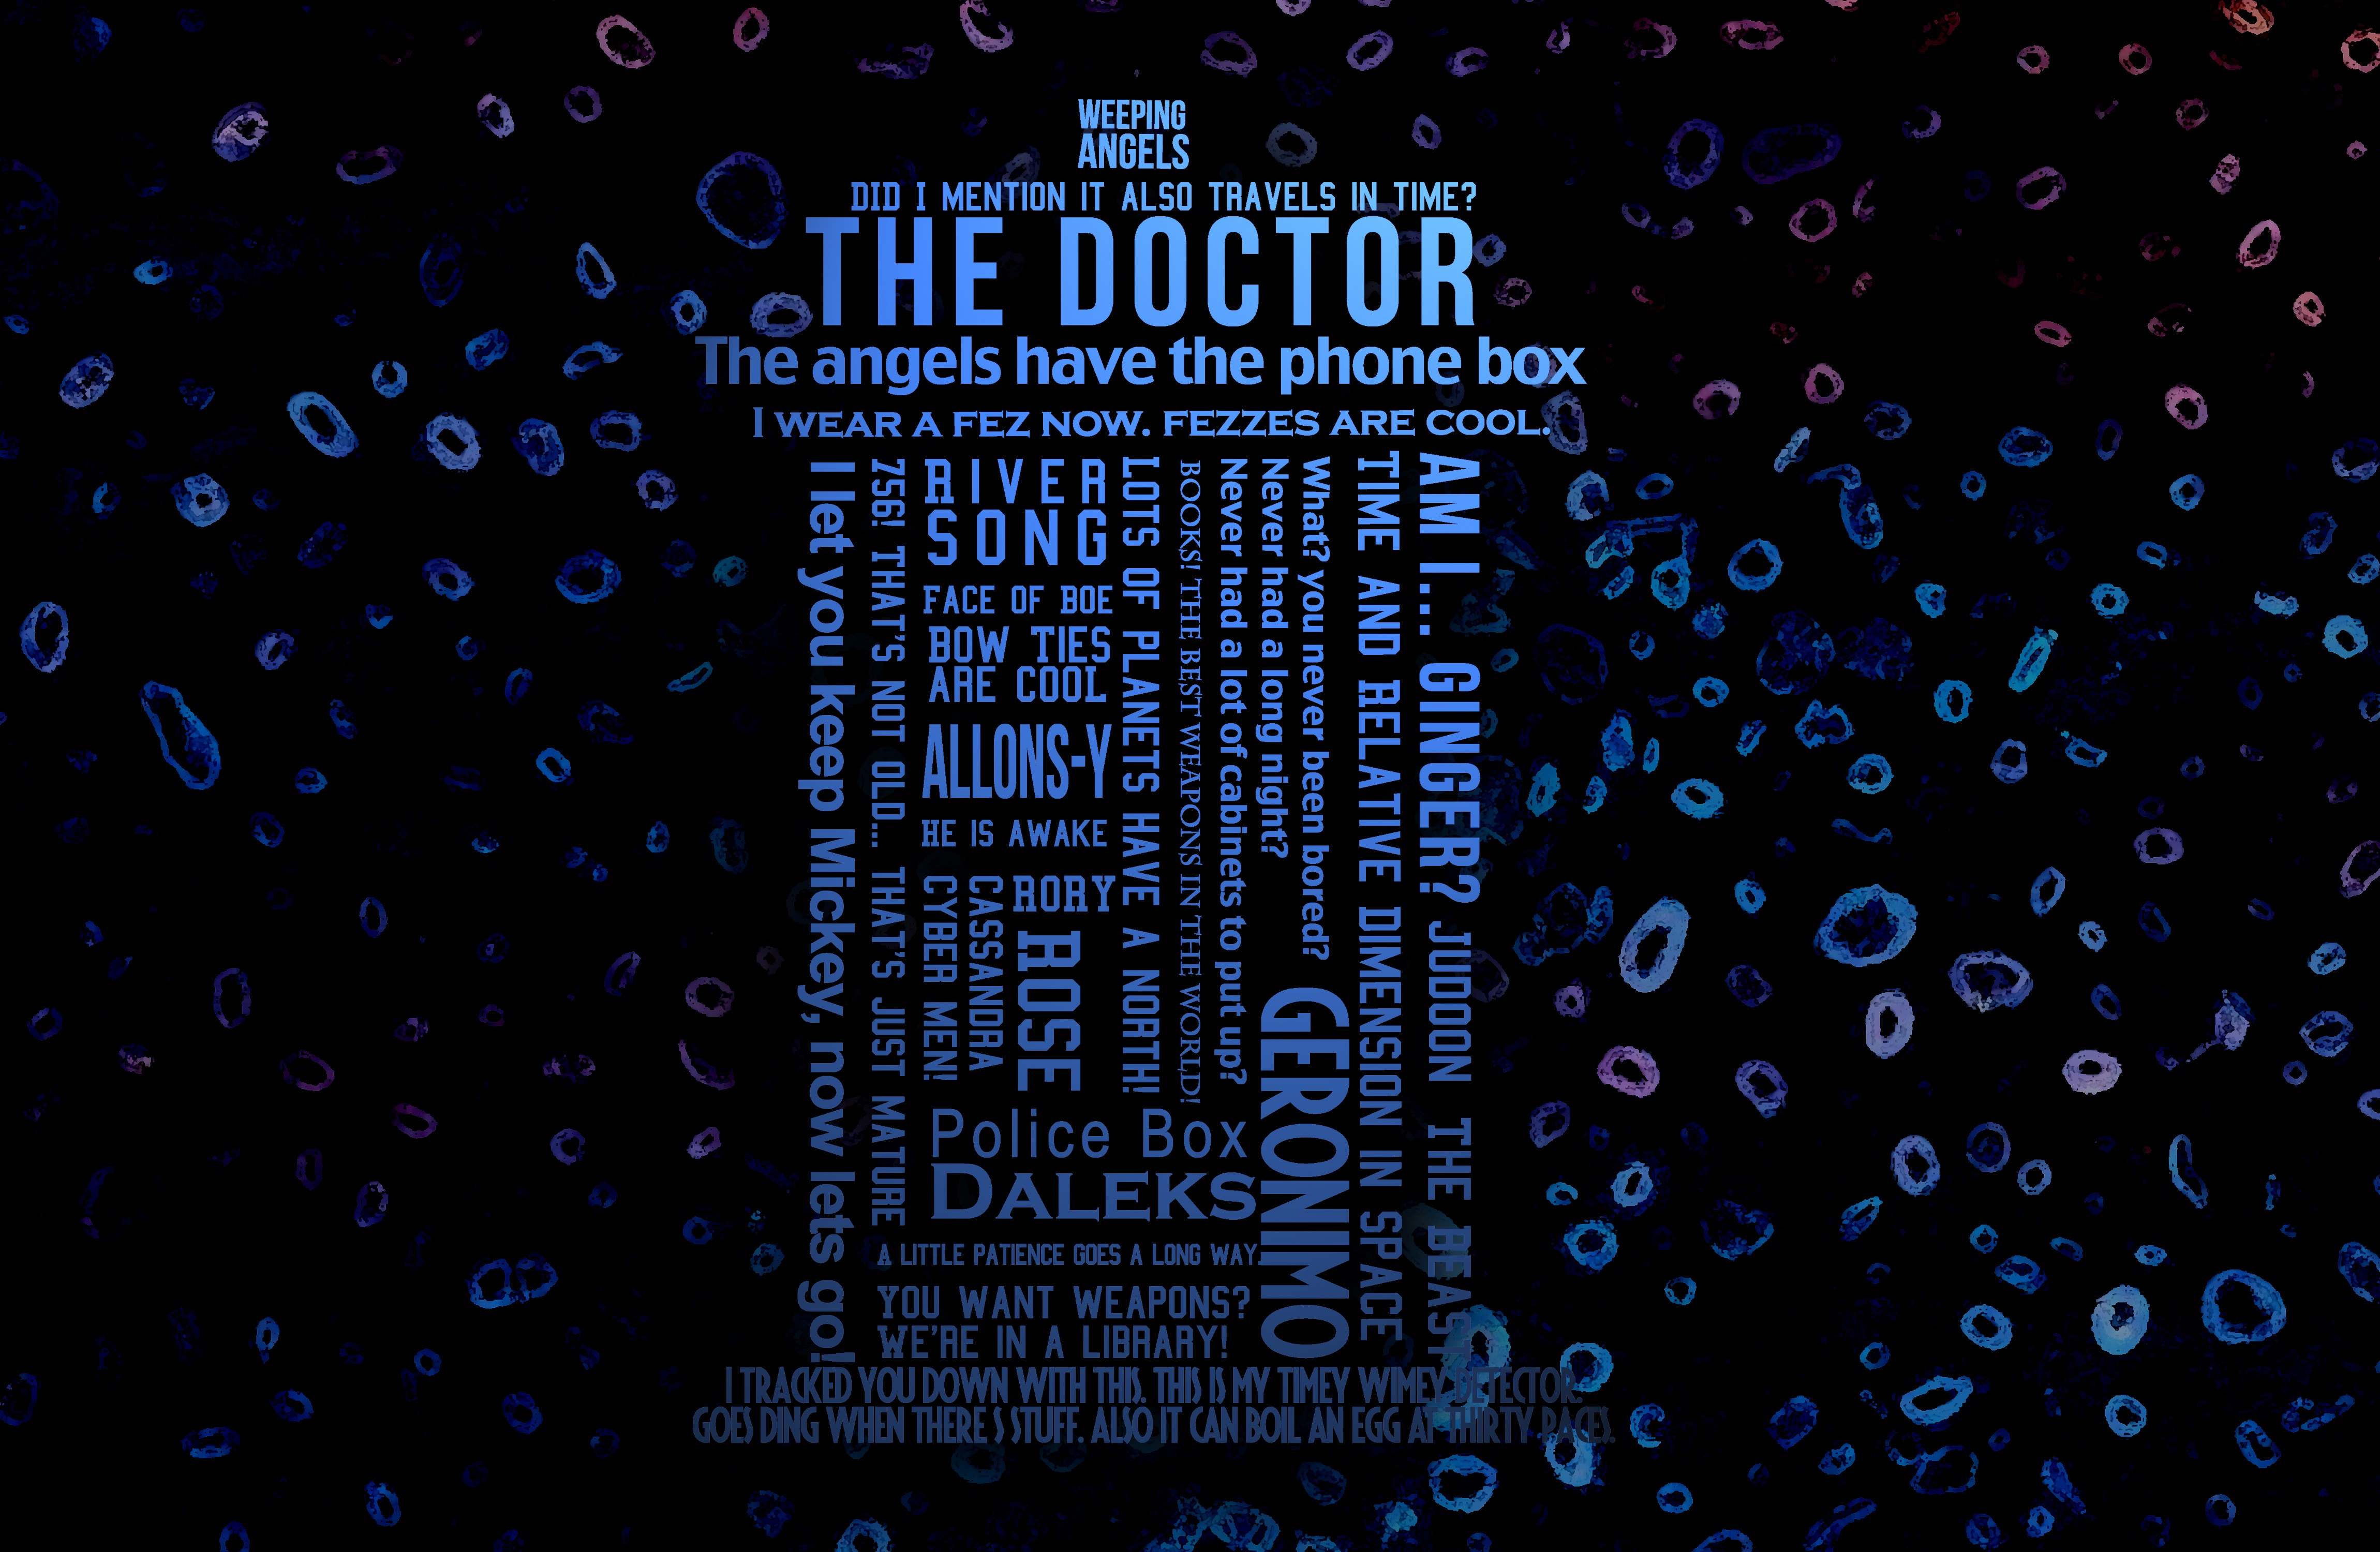 quote time travel the doctor typography tardis humor doctor who